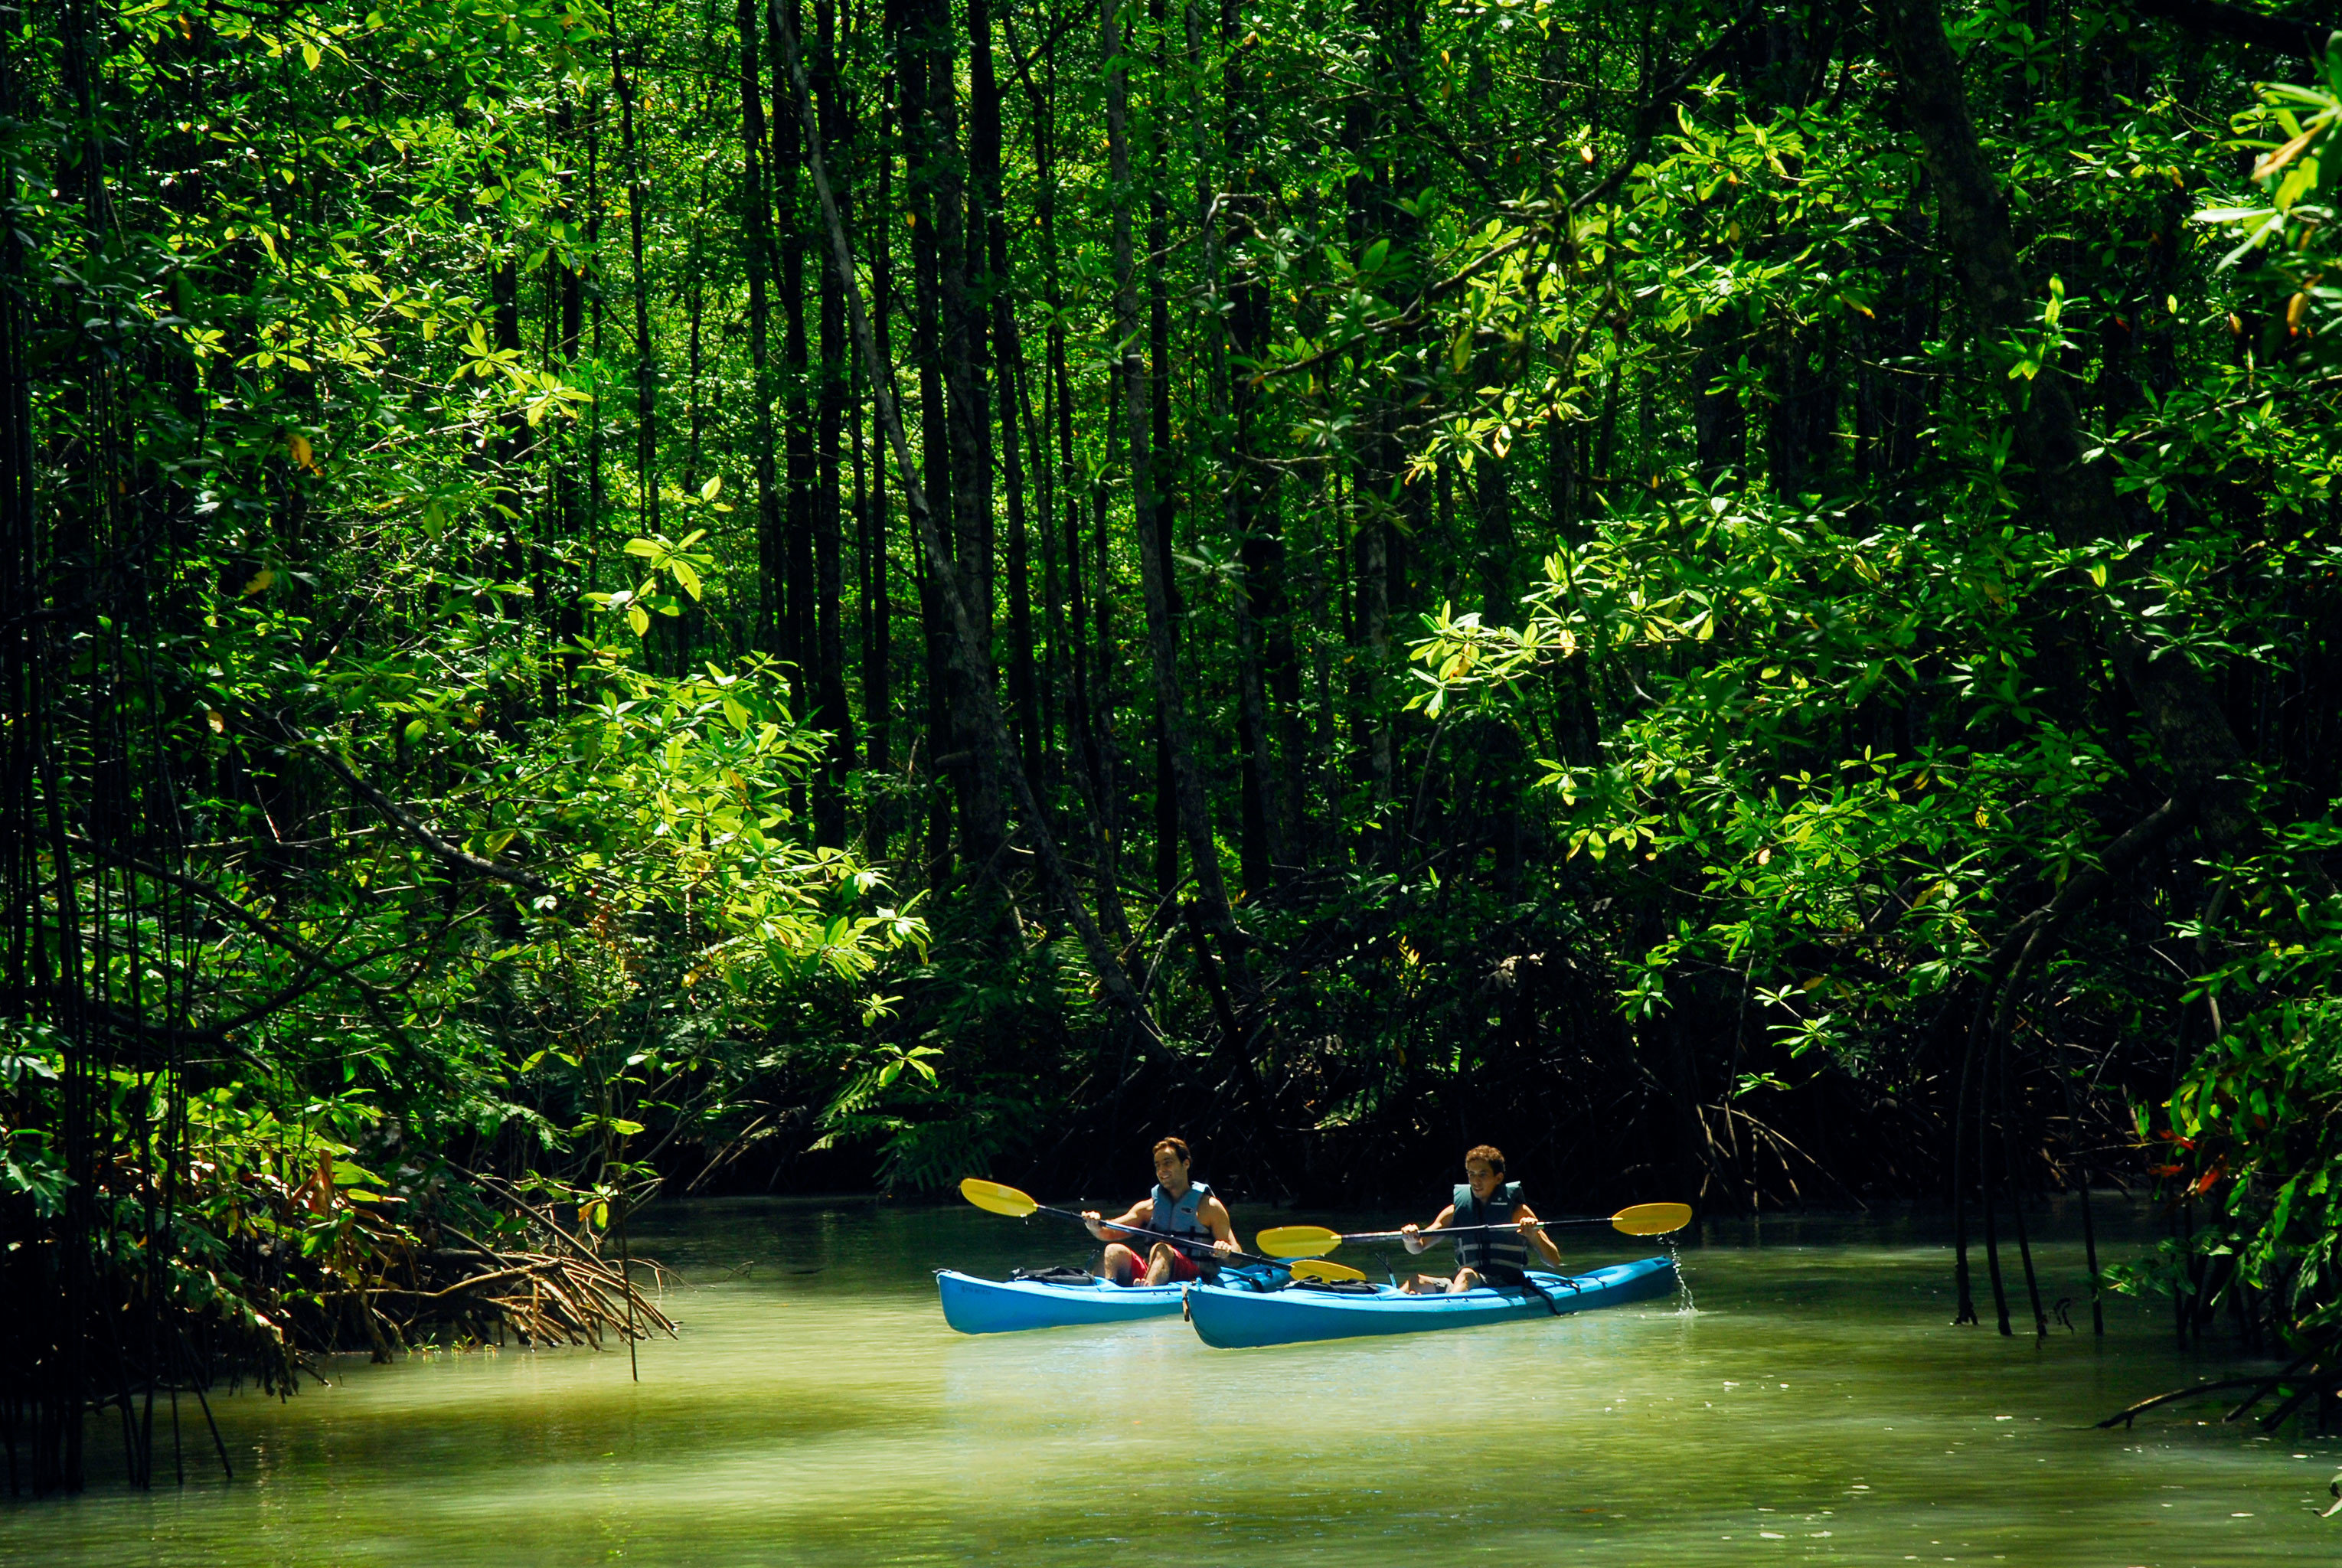 Adventure All-inclusive Budget Eco Jungle Outdoors Sport tree outdoor habitat Nature green natural environment Boat Forest River vehicle canoe bayou boating rainforest woodland surrounded wooded